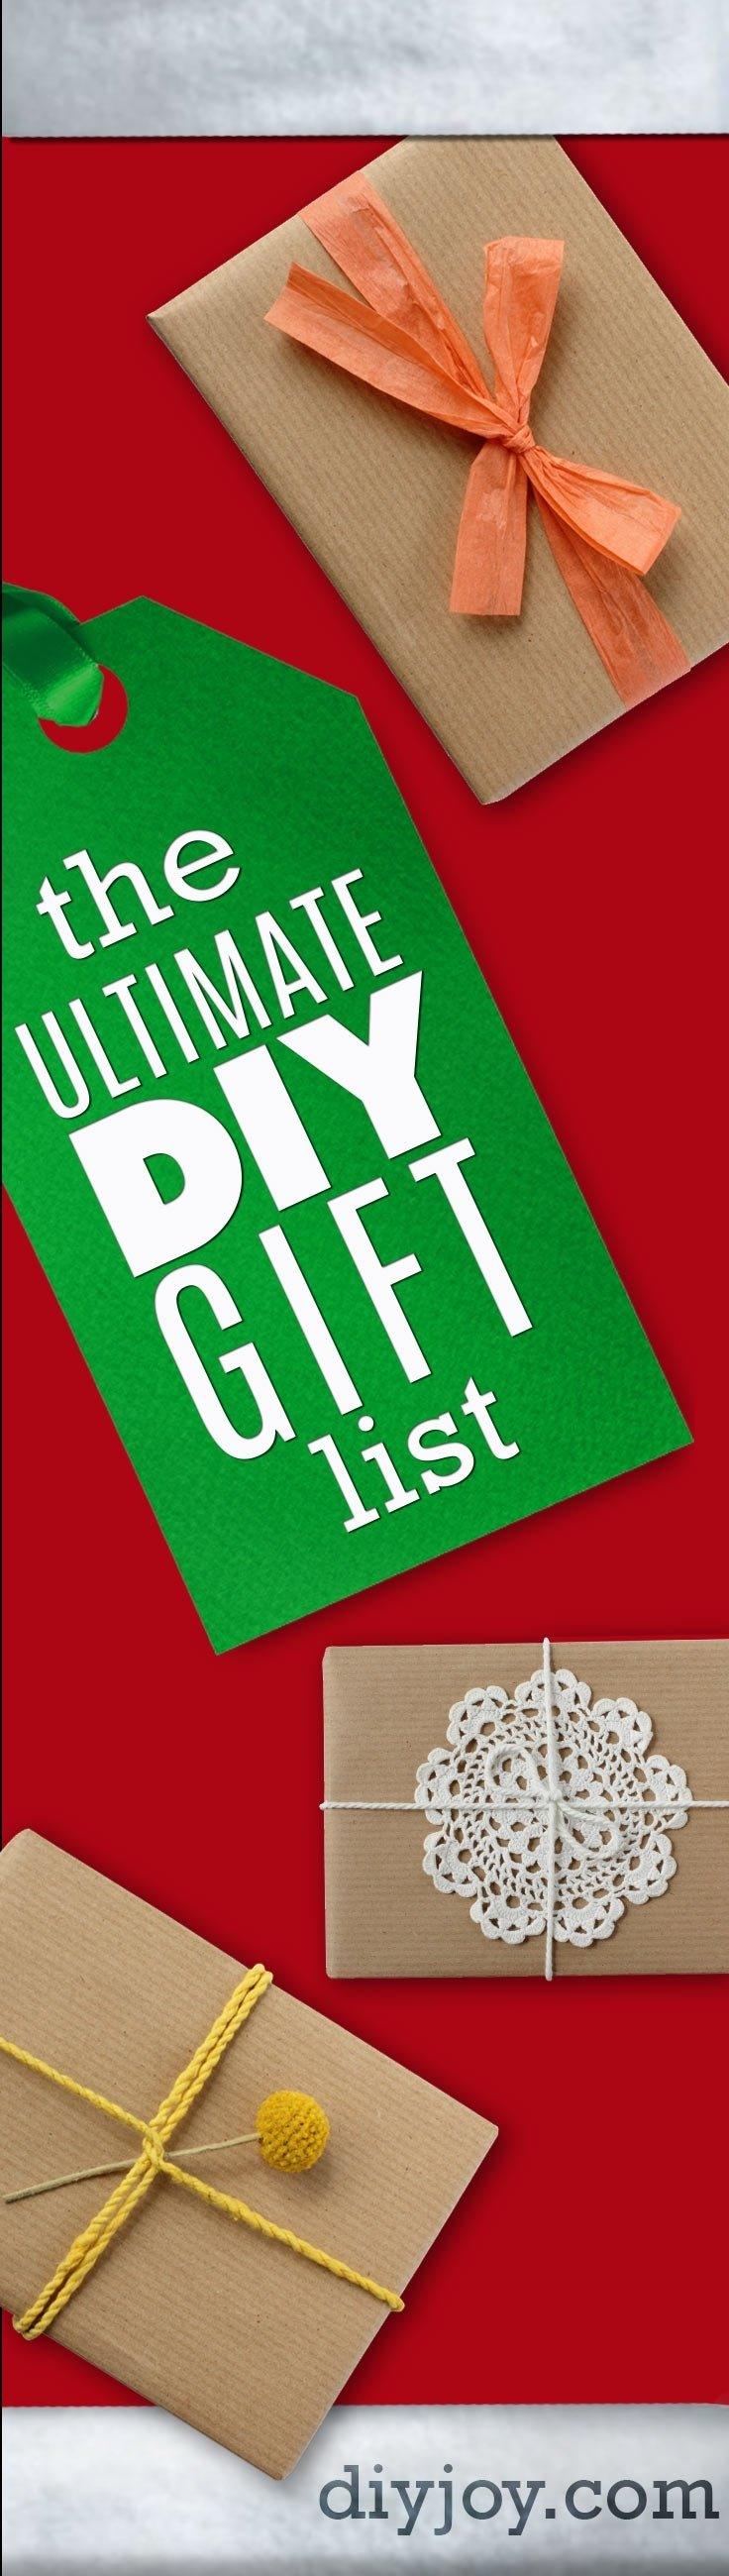 10 Trendy Gift Ideas For Girlfriends Parents the ultimate diy christmas gifts list 2021